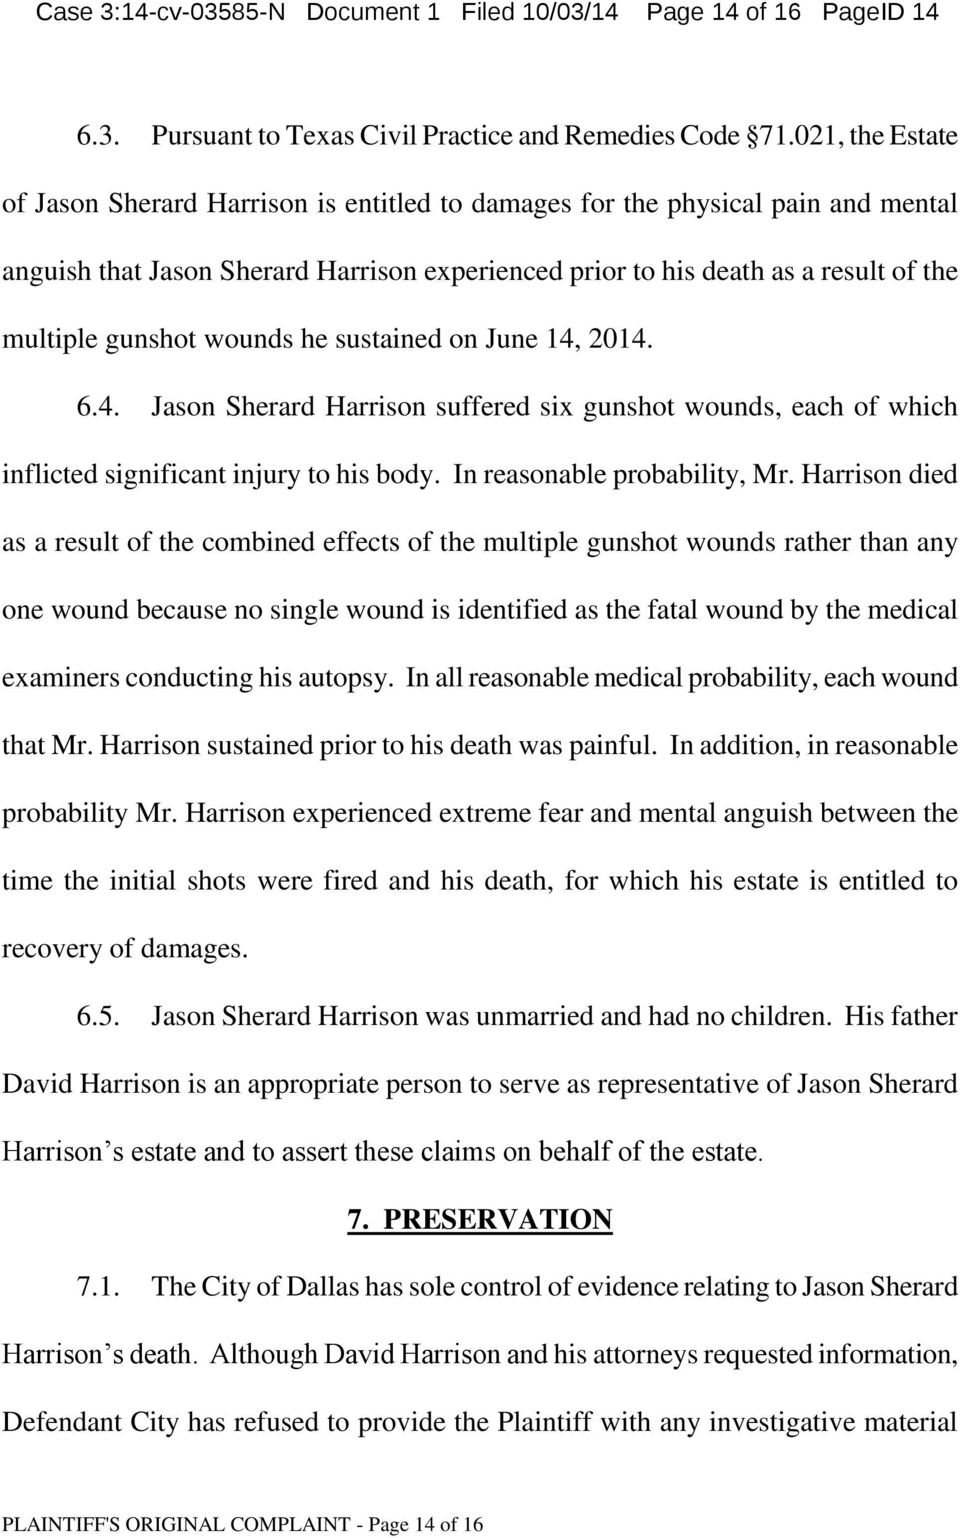 gunshot wounds he sustained on June 14, 2014. 6.4. Jason Sherard Harrison suffered six gunshot wounds, each of which inflicted significant injury to his body. In reasonable probability, Mr.